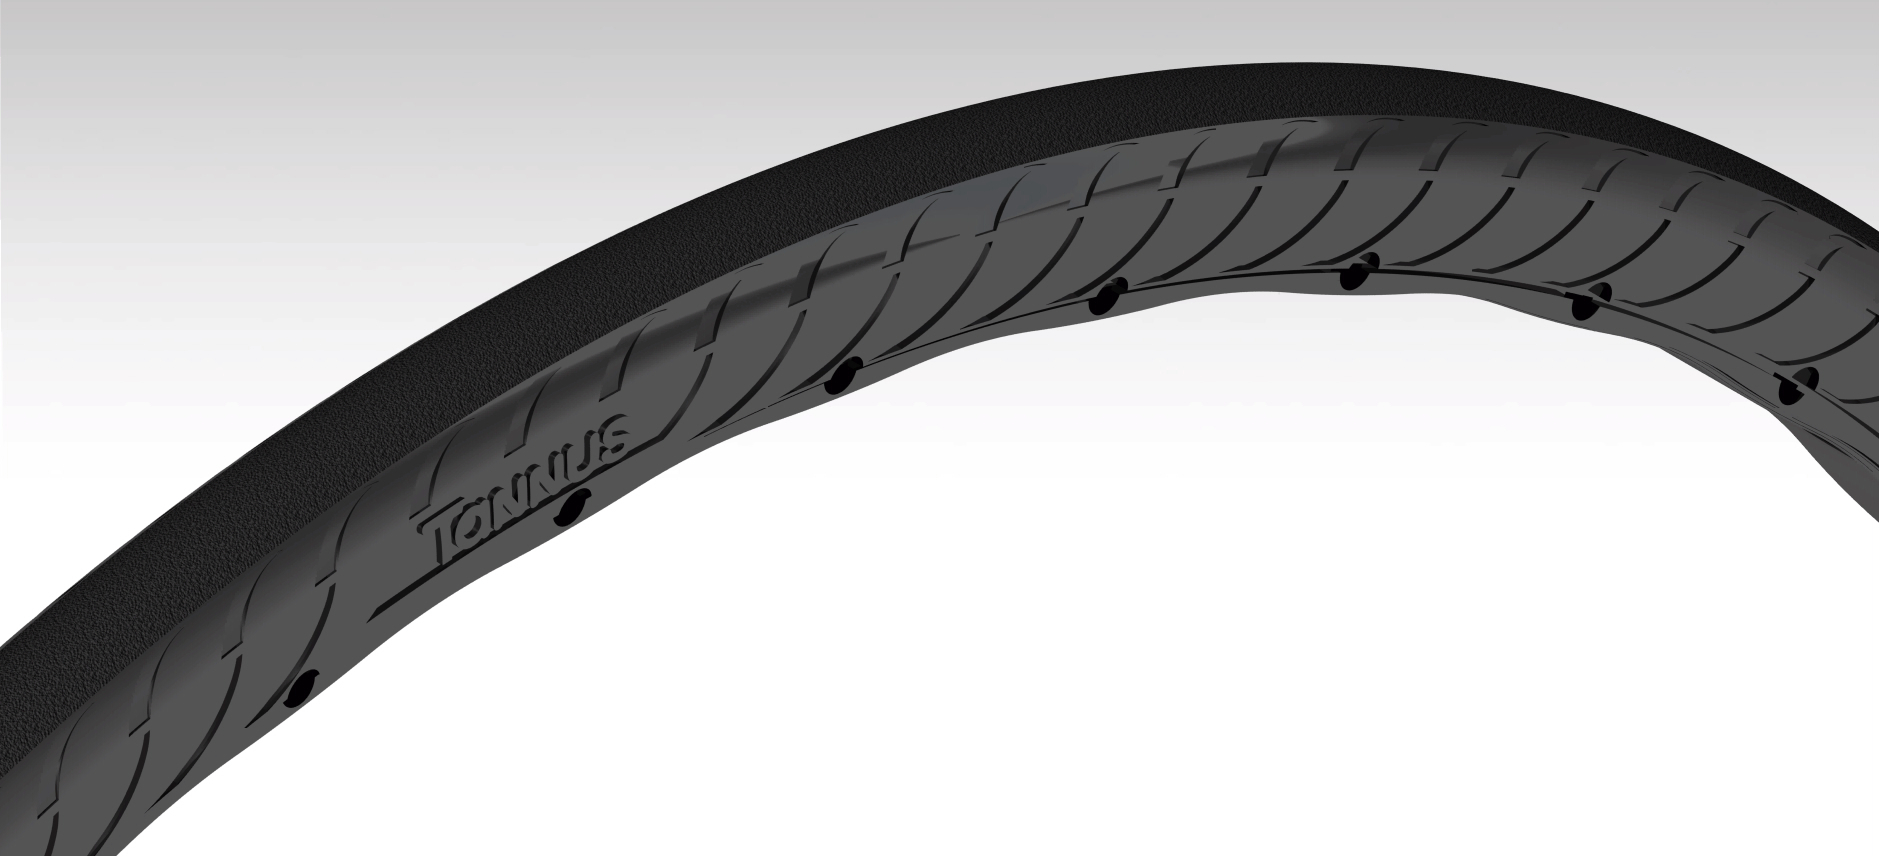 """The new Tannus tyre is """"vastly improved"""""""